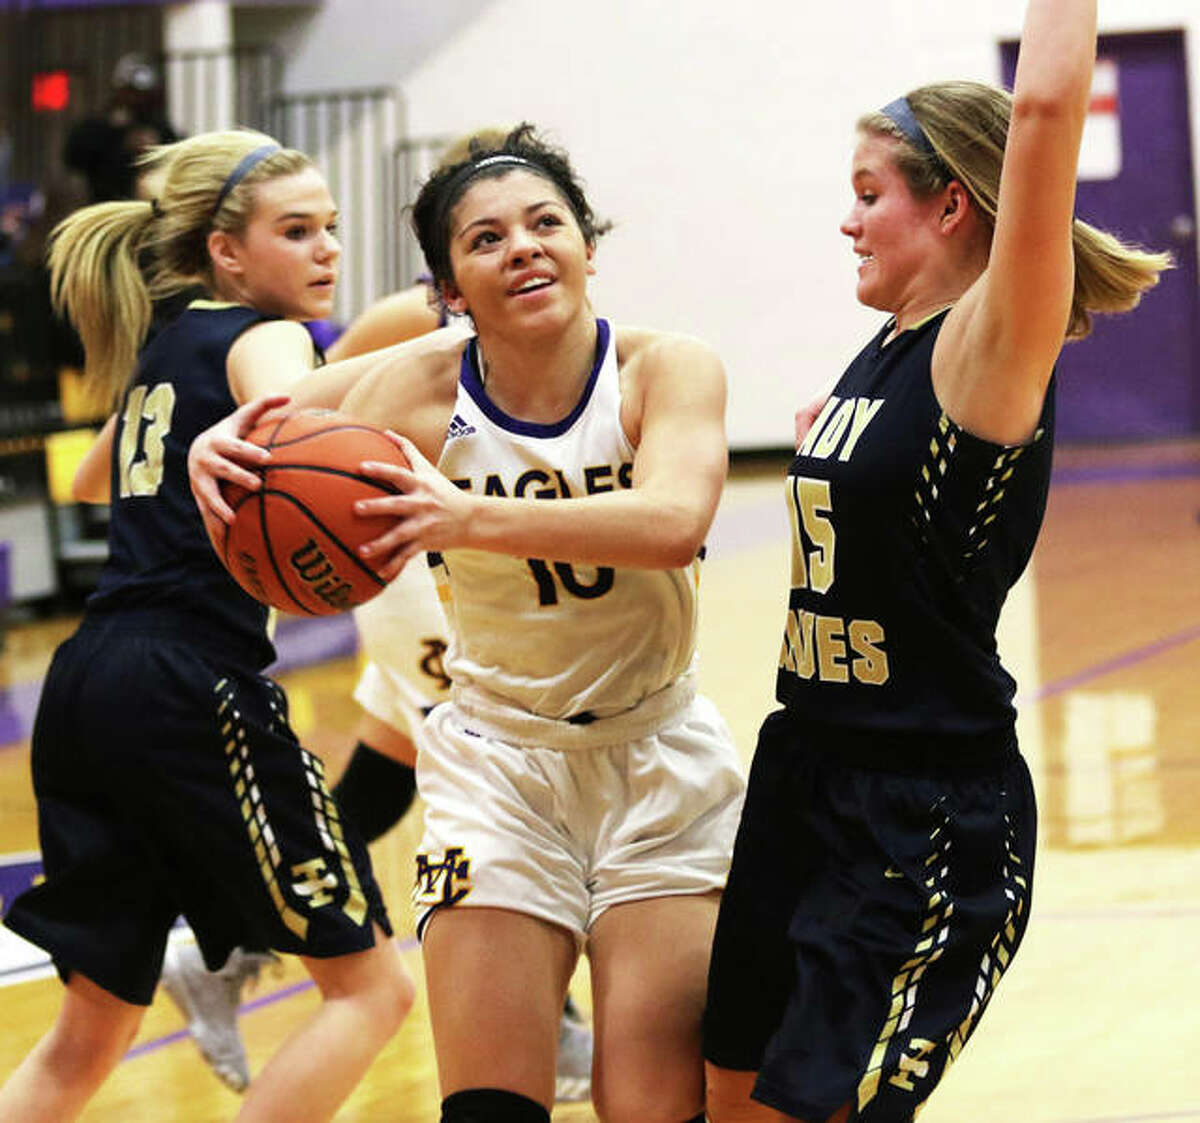 CM's Kourtland Tyus (middle) gets to the basket between two Teutopolis defenders in an Eagles victory Jan. 13 in Bethalto. On Thursday night, Tyus scored 17 points in a loss to Missouri power Incarnate Word in St. Louis.